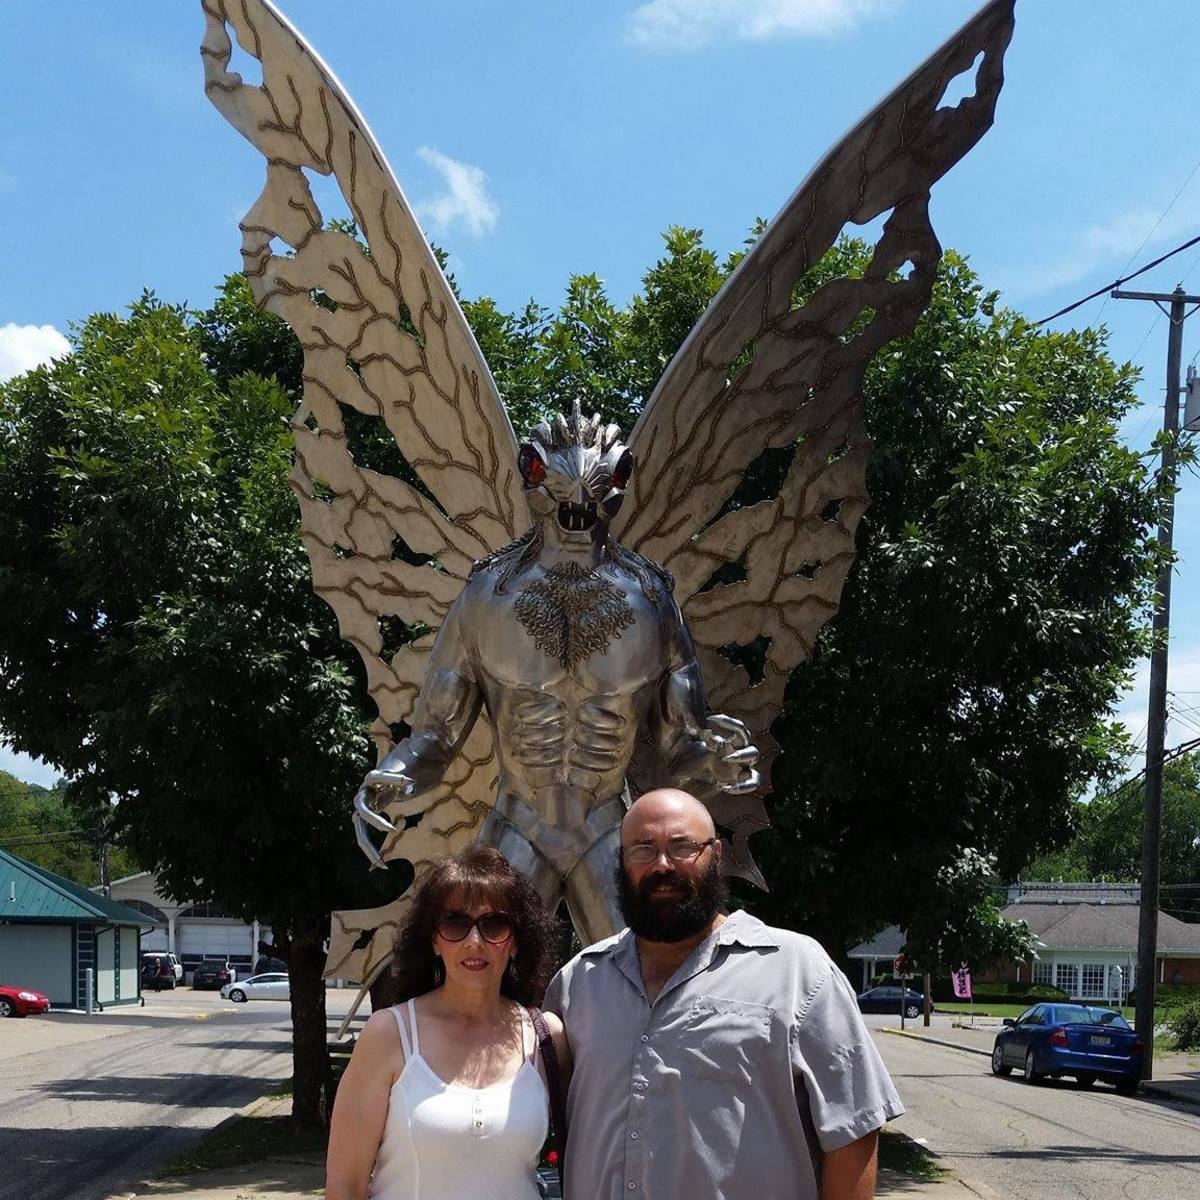 True Mysteries of Time and Space: Mothman and Indrid Cold